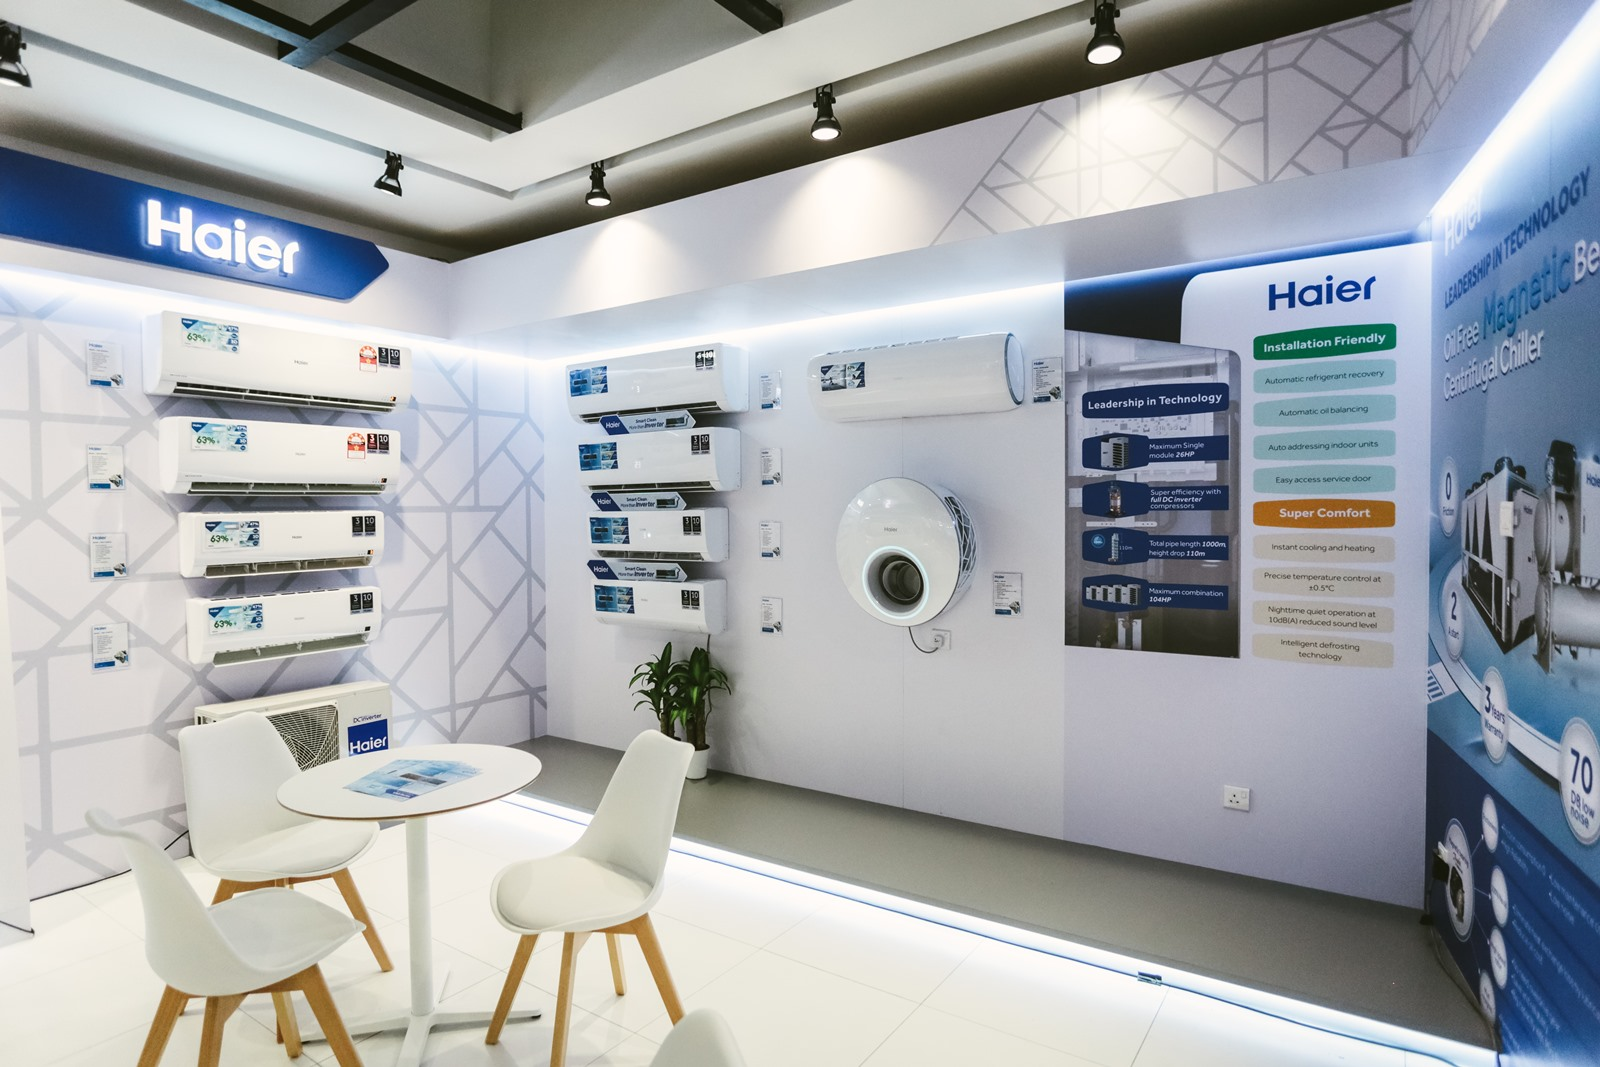 Haier air conditioners on display at the Haier Experience Centre